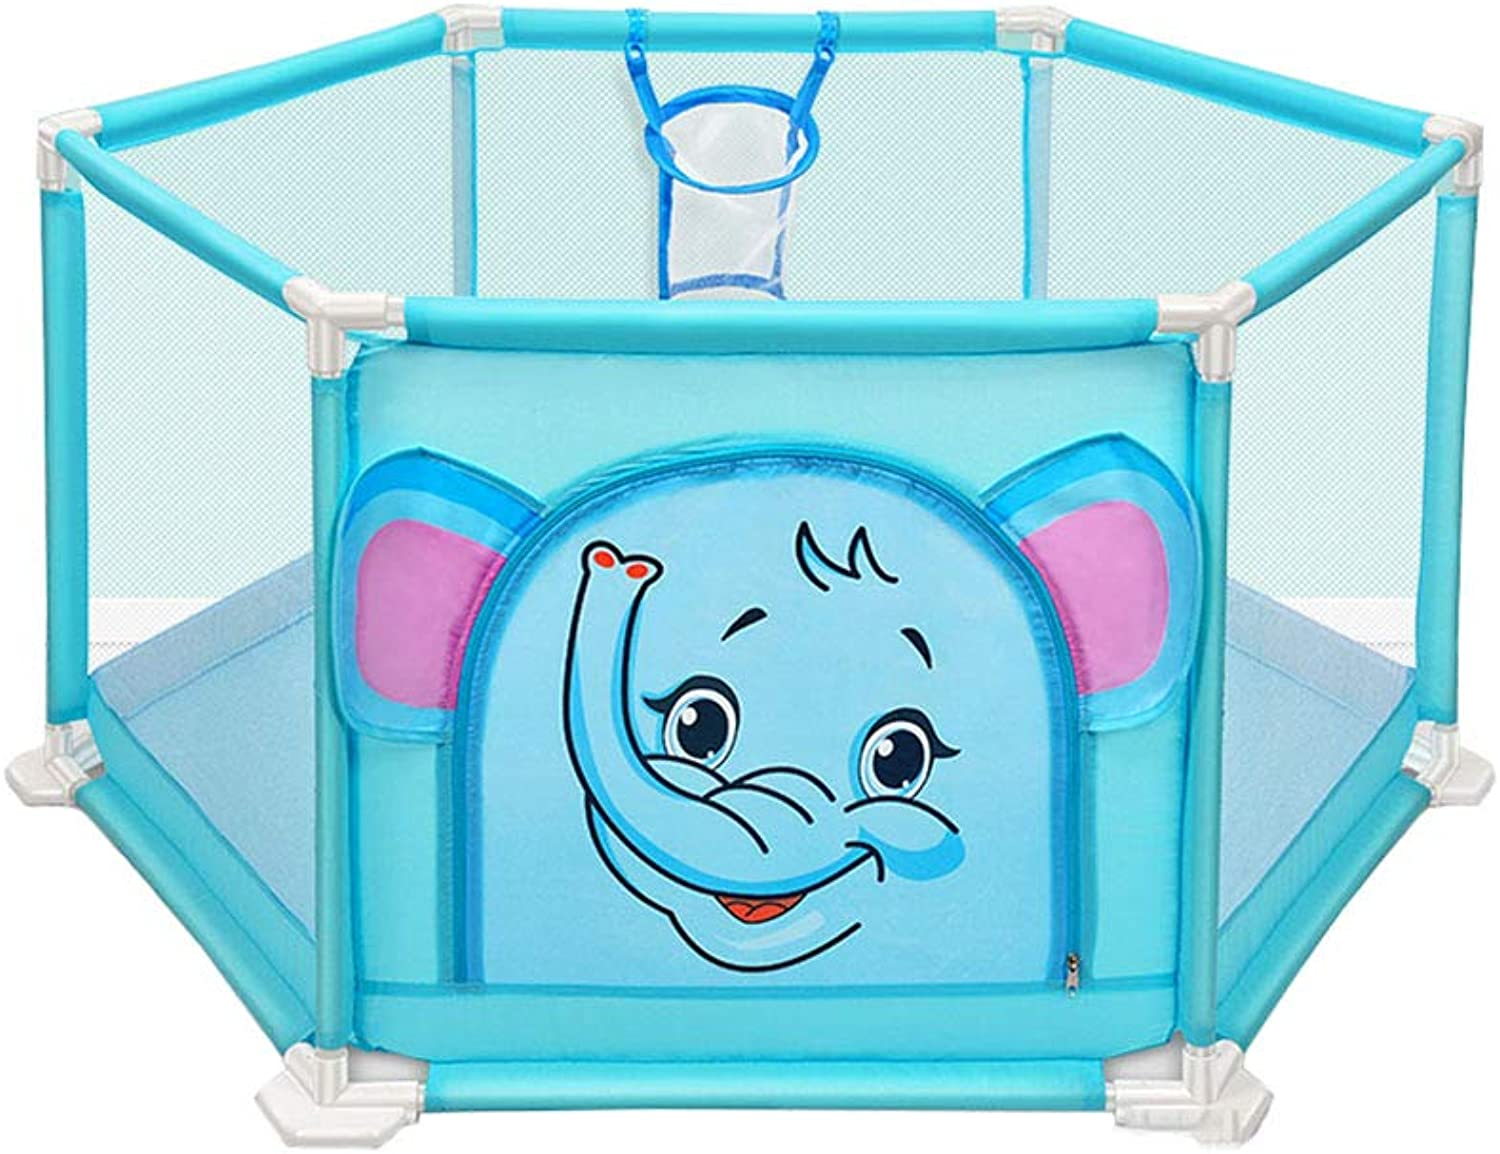 Playpen Kids Playground Indoor Home Security Fence Foldable Lightweight Mesh Baby Playpen (color   bluee)